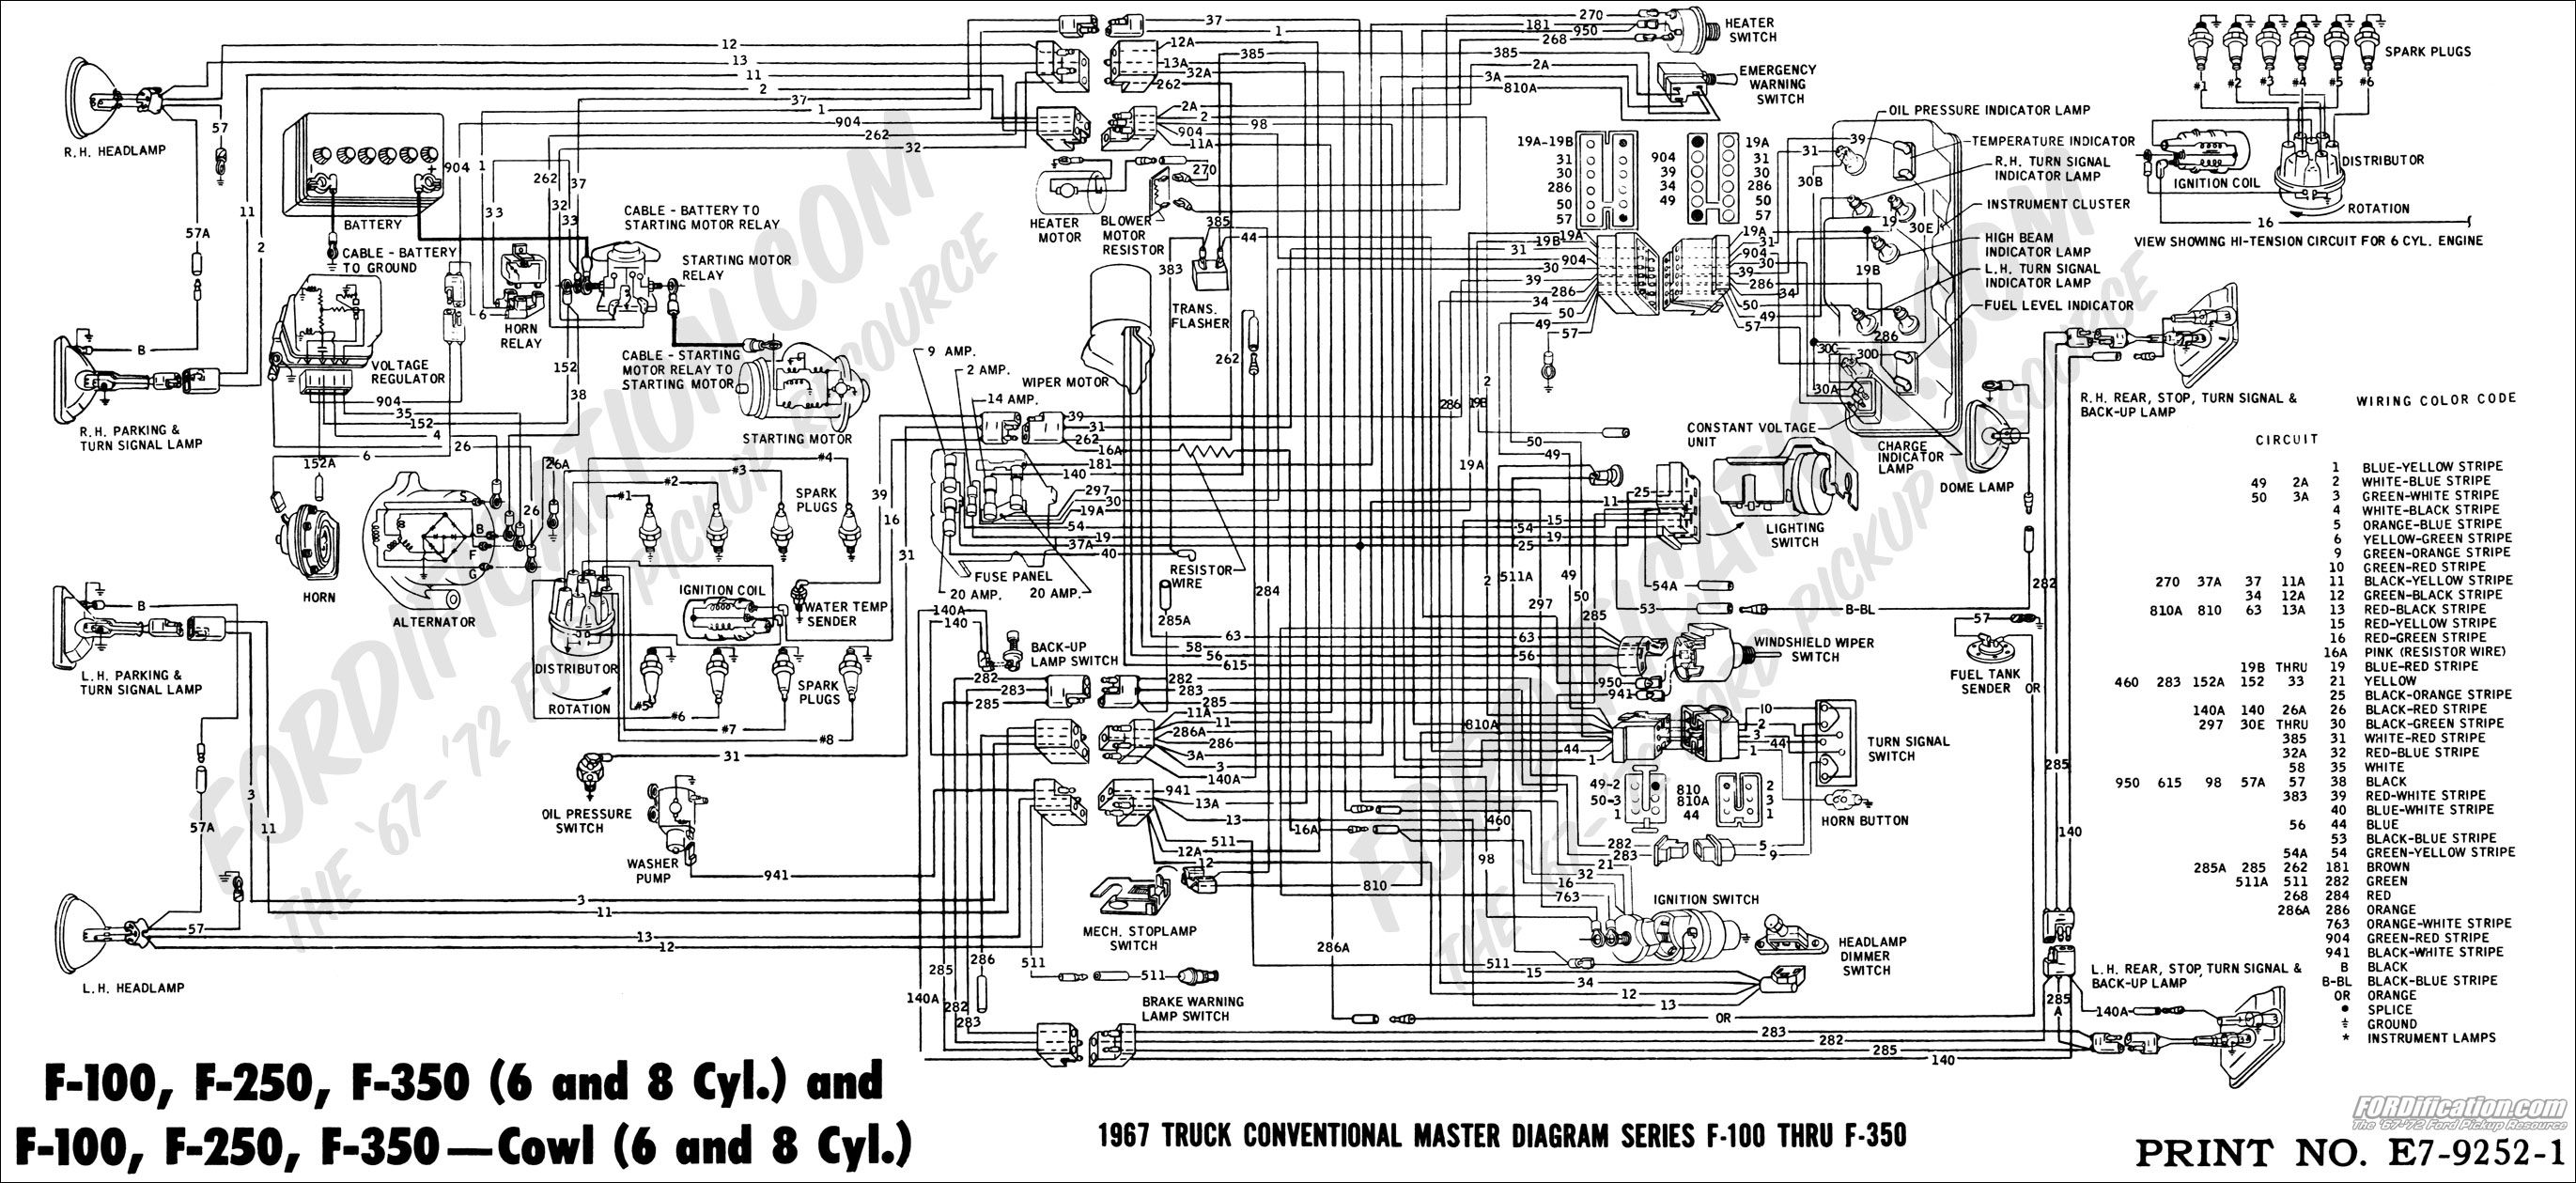 8e608320d8e6c71ff5bbdb2efdd7ada1 ford truck technical drawings and schematics section h wiring Ford E 350 Wiring Diagrams at panicattacktreatment.co